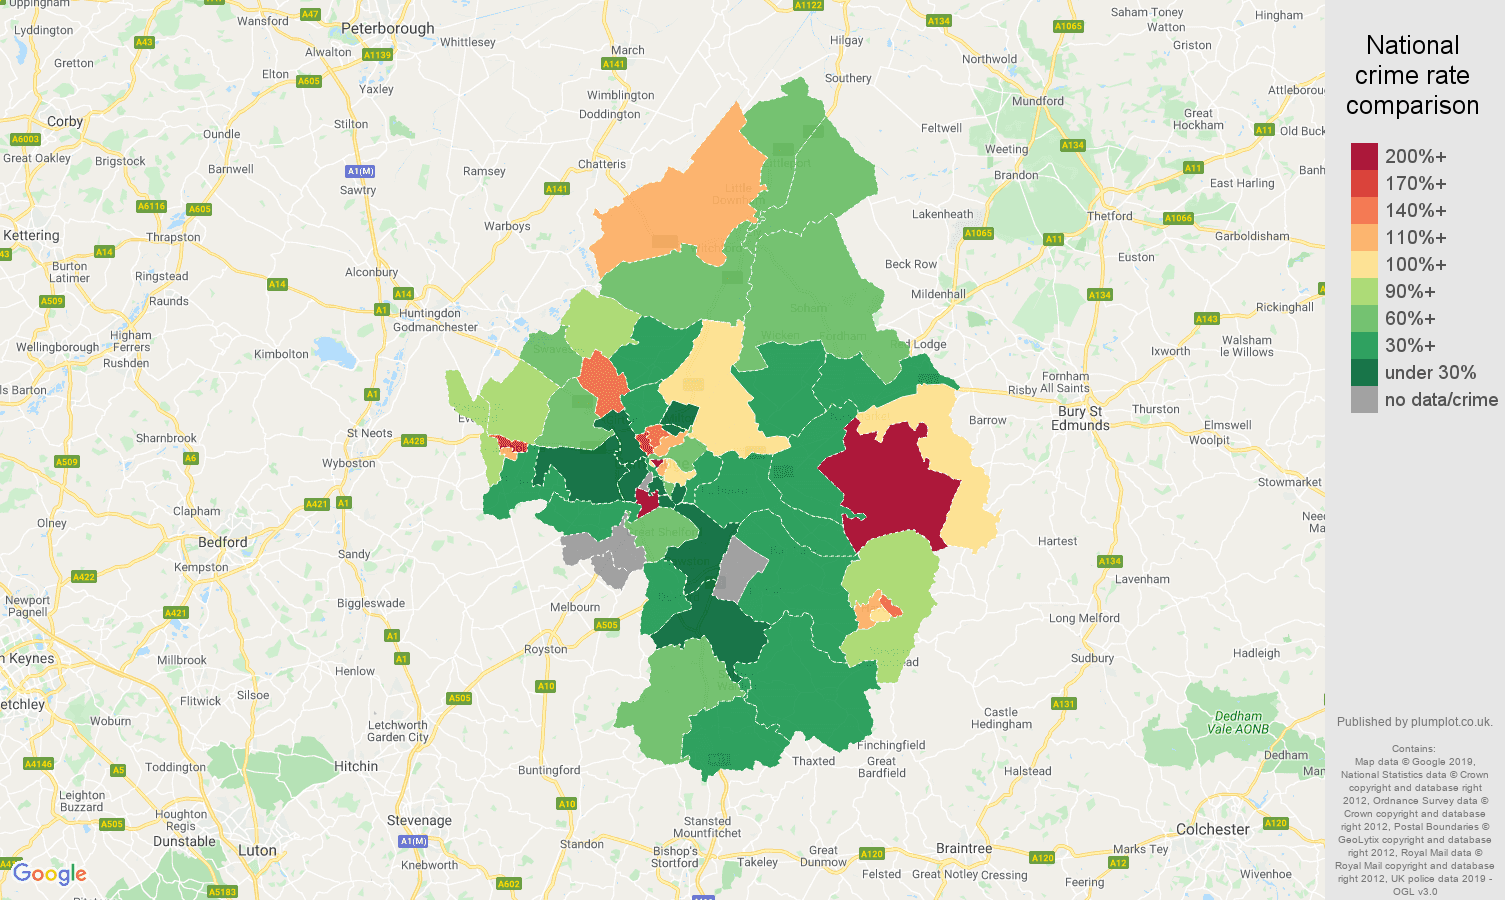 Cambridge other crime rate comparison map